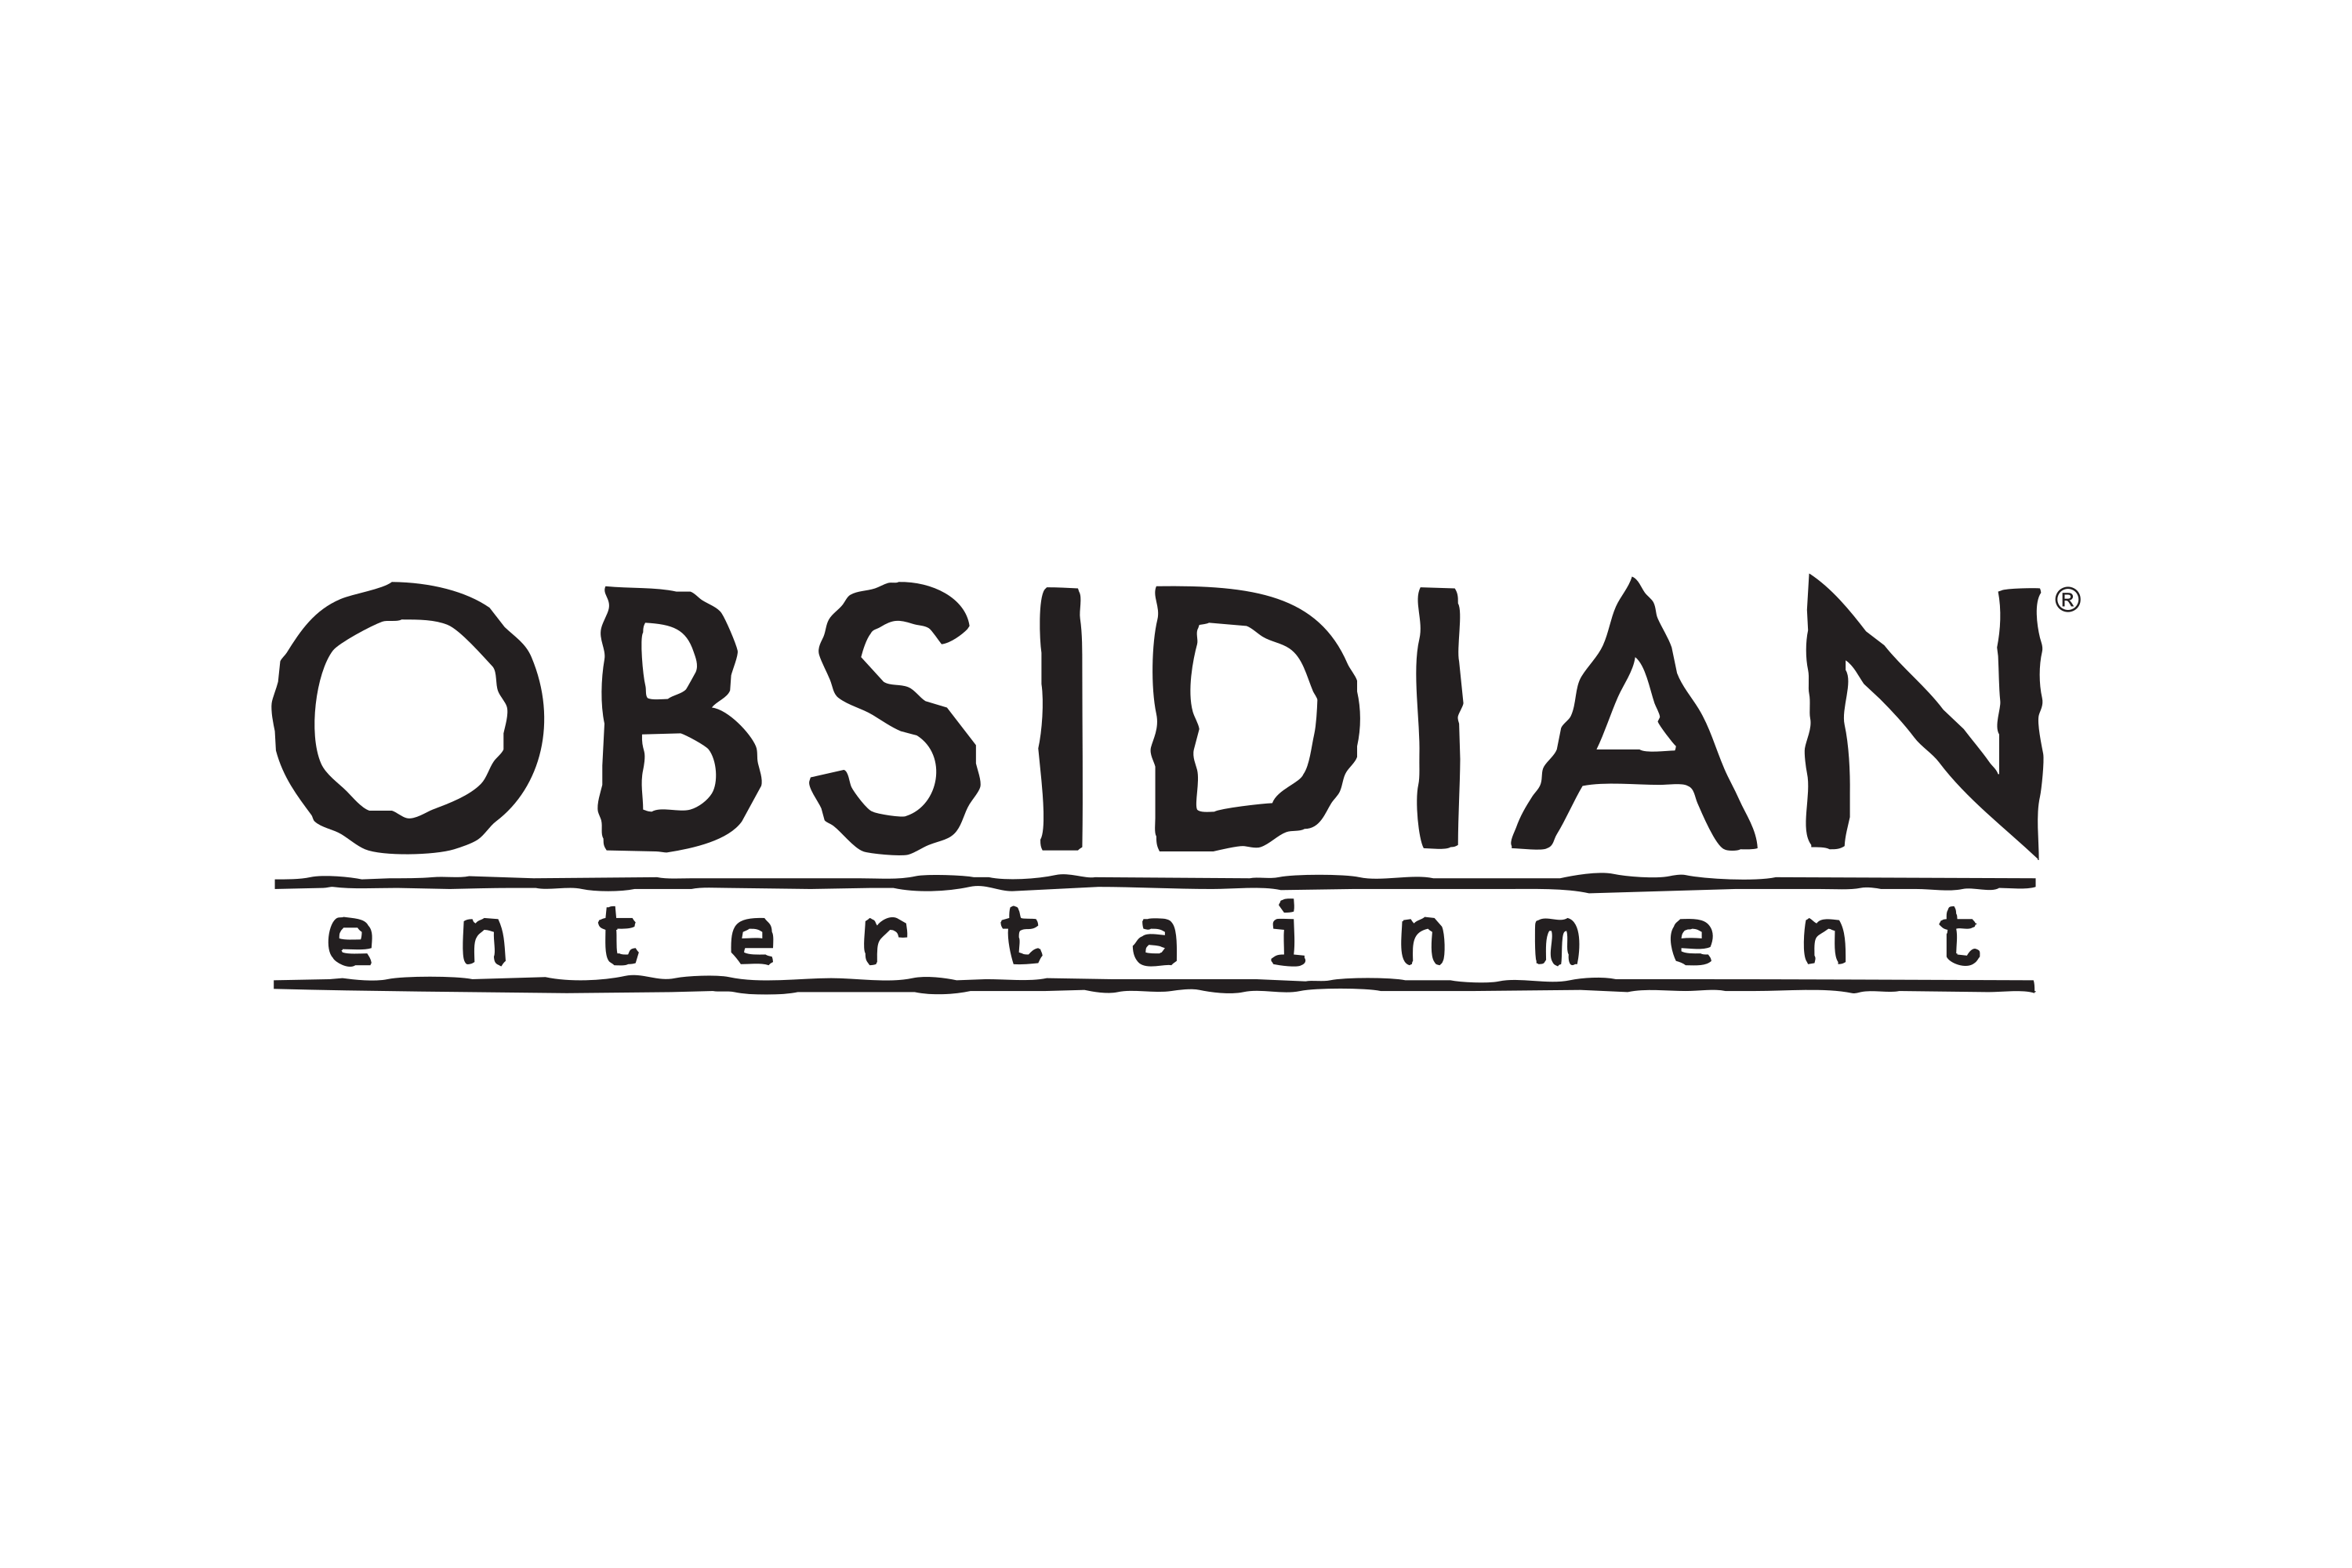 Download Obsidian Entertainment Logo in SVG Vector or PNG